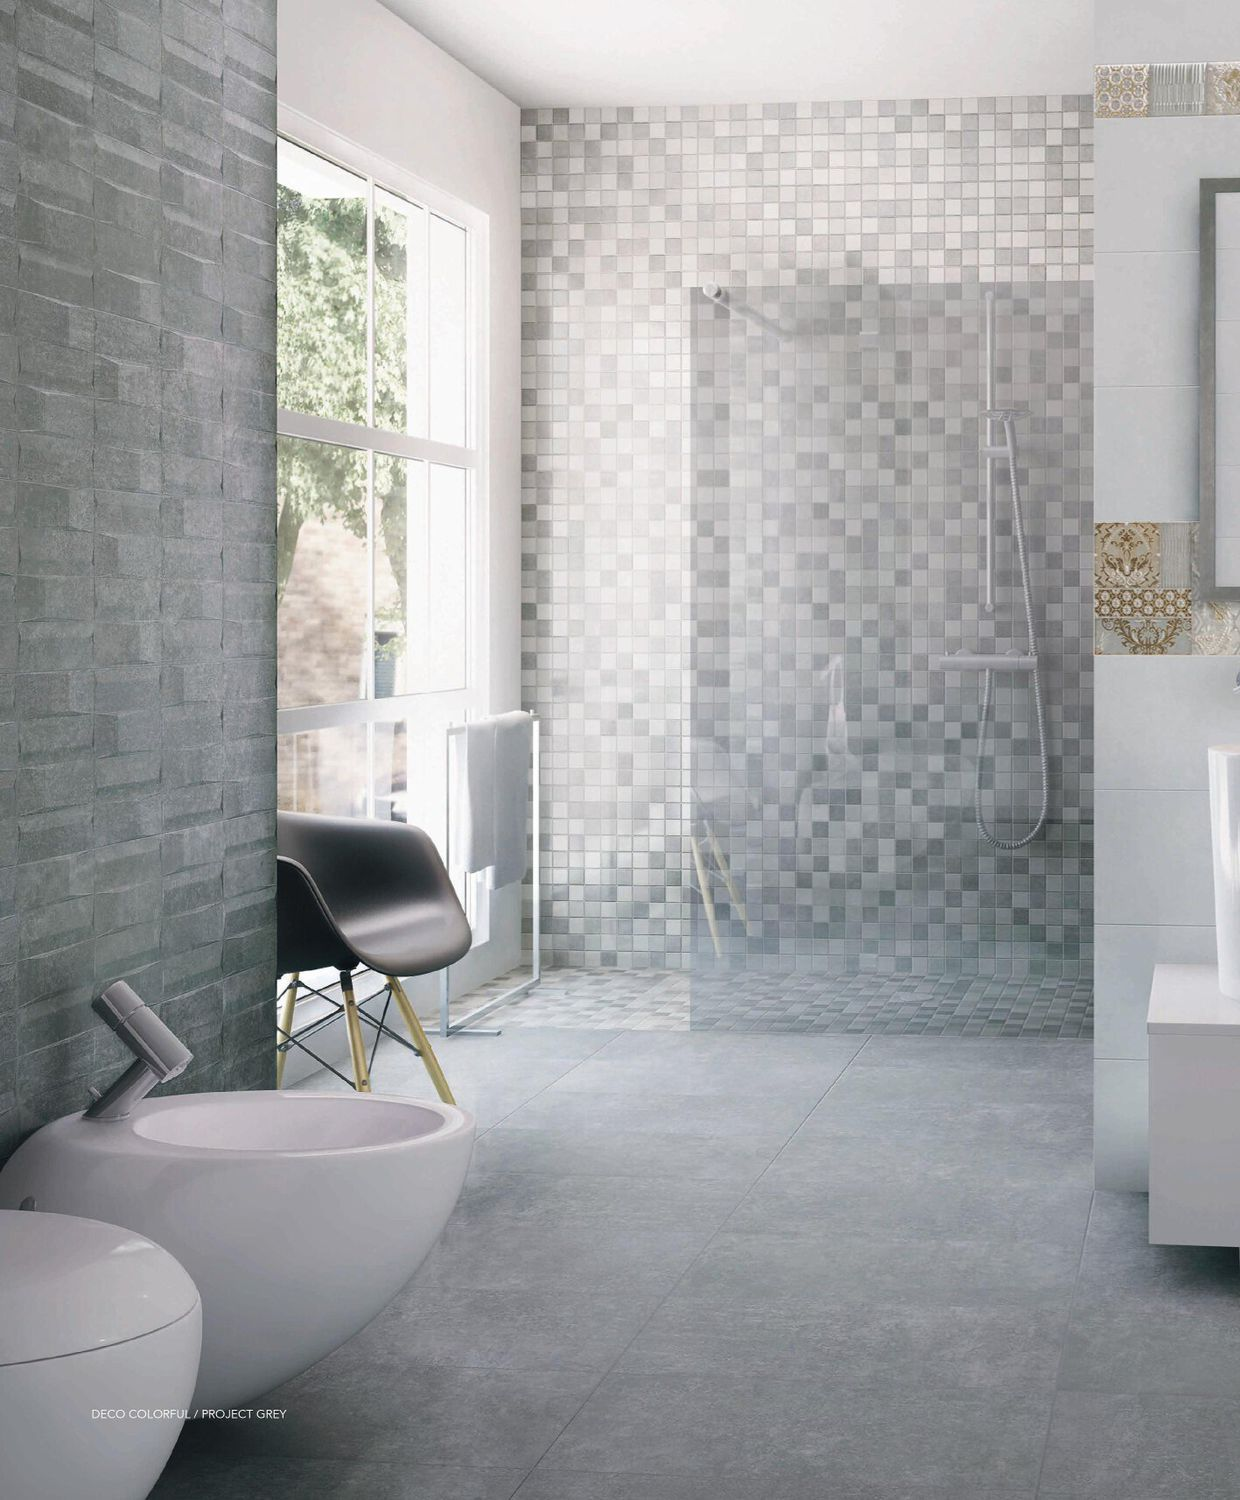 Bathroom tile / kitchen / floor / ceramic - PROJECT - Ceracasa Ceramica